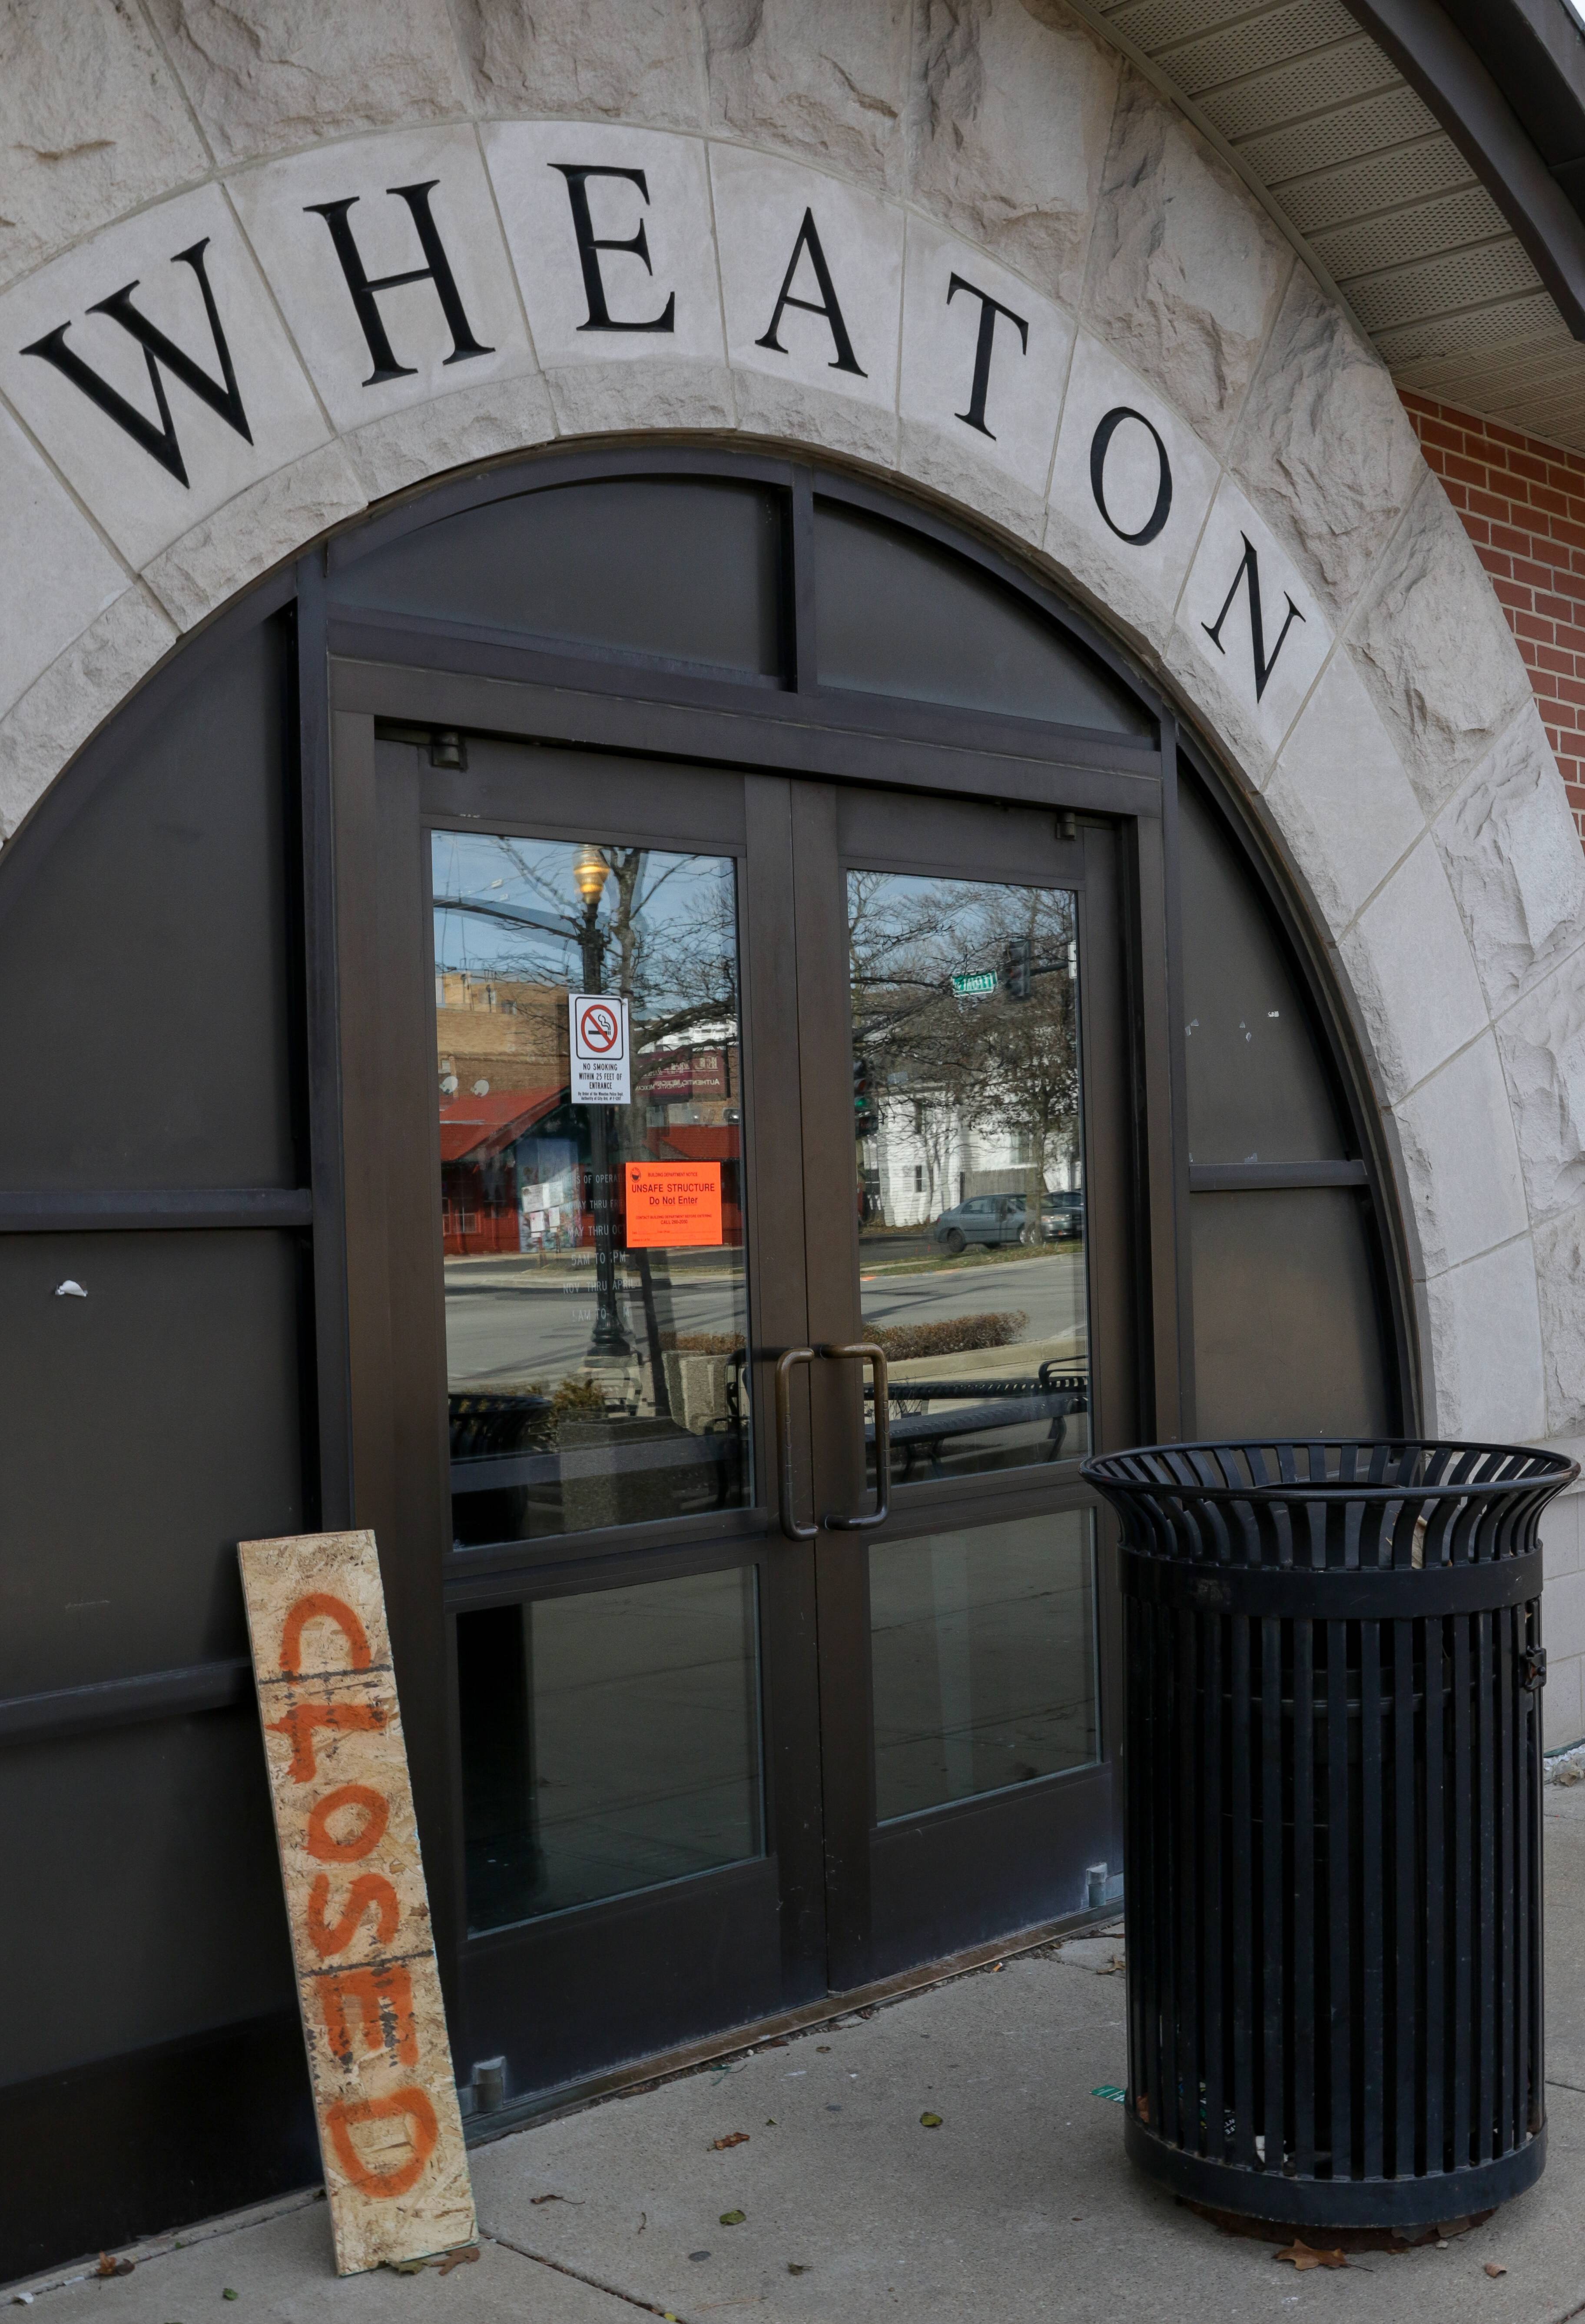 The Metra station in downtown Wheaton is still closed after a fire in a storage and furnace room the night before Thanksgiving.